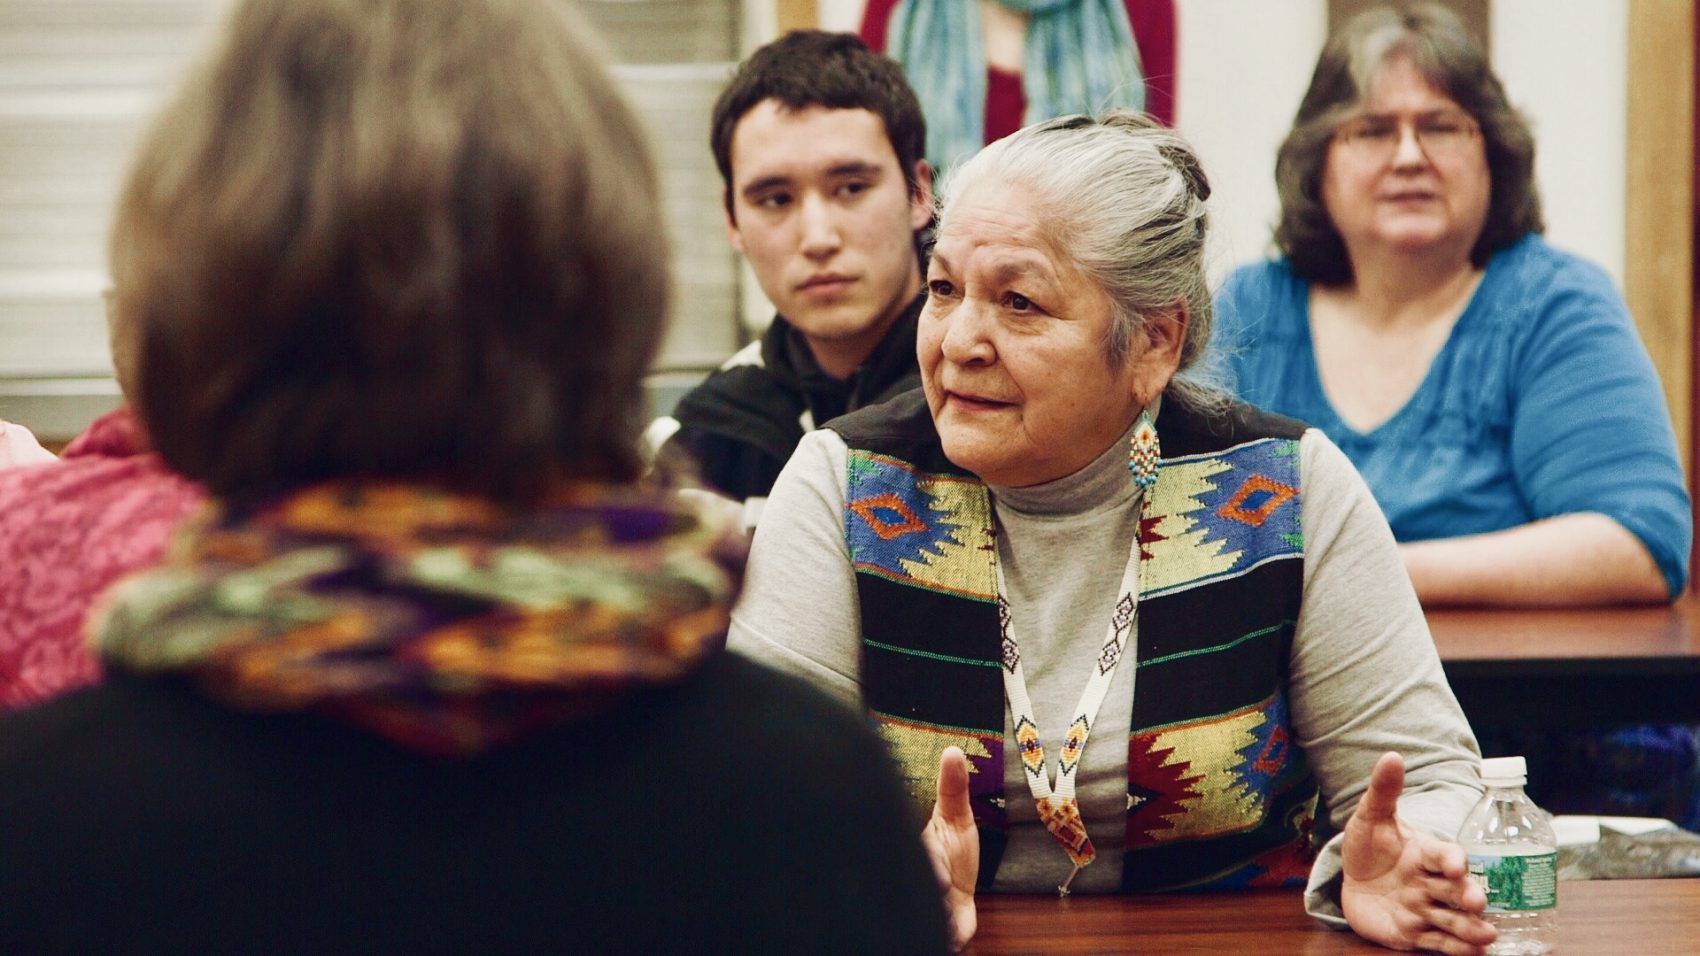 Georginia Sappier-Richardson sharing her story at a TRC community visit. (Courtesy Ben Pender-Cudlip/Upstander Project)